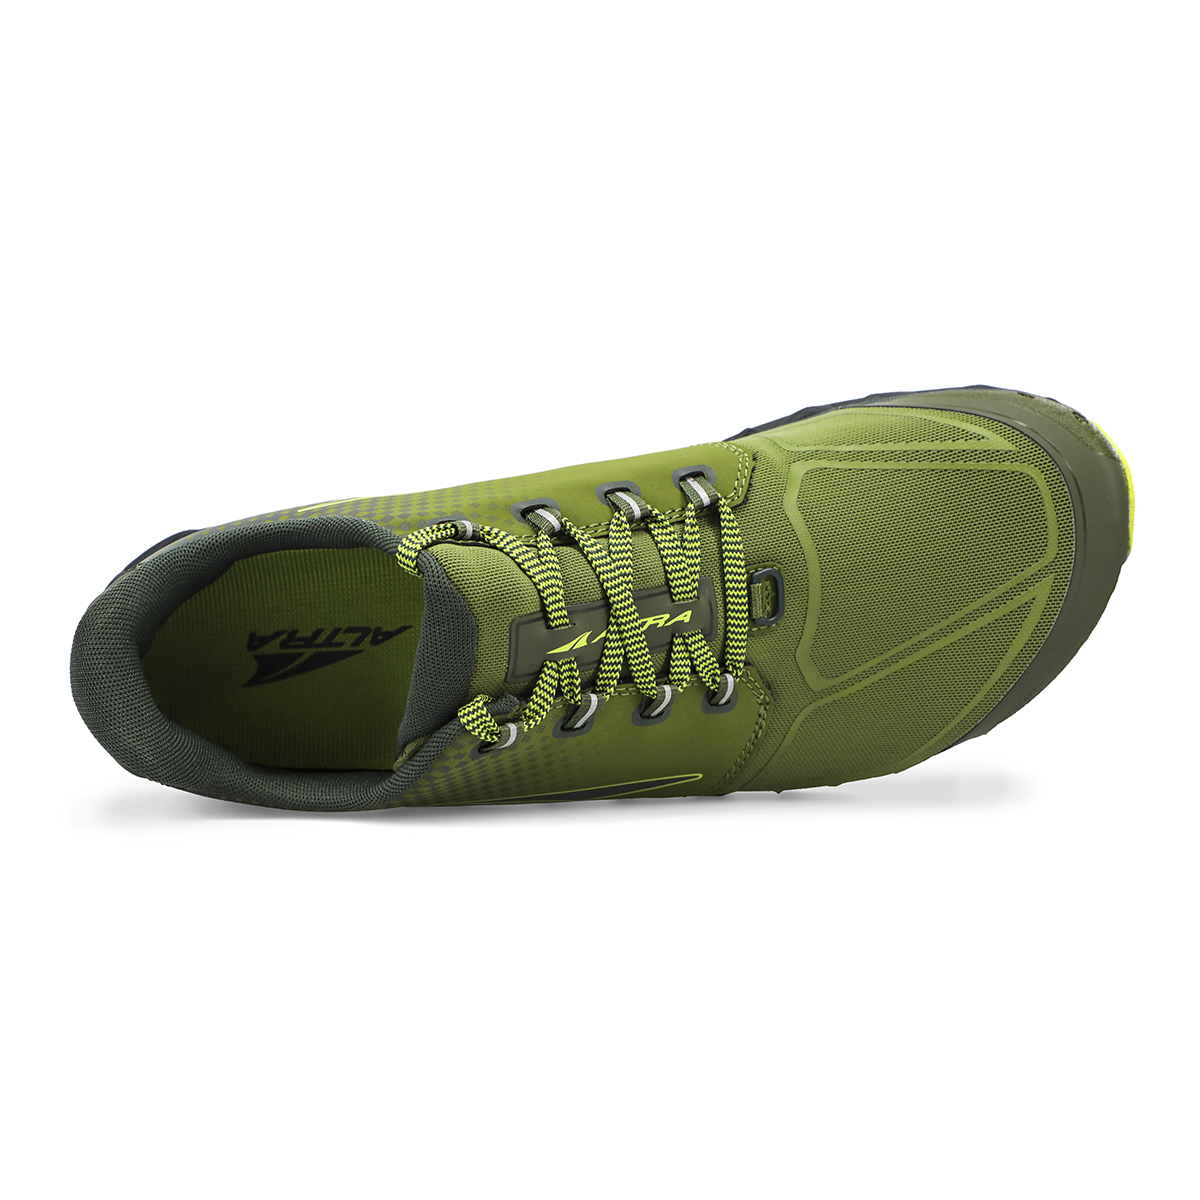 Men's Altra Superior 4.5 Trail Running Shoe - Color: Green/Lime - Size: 7 - Width: Regular, Green/Lime, large, image 3